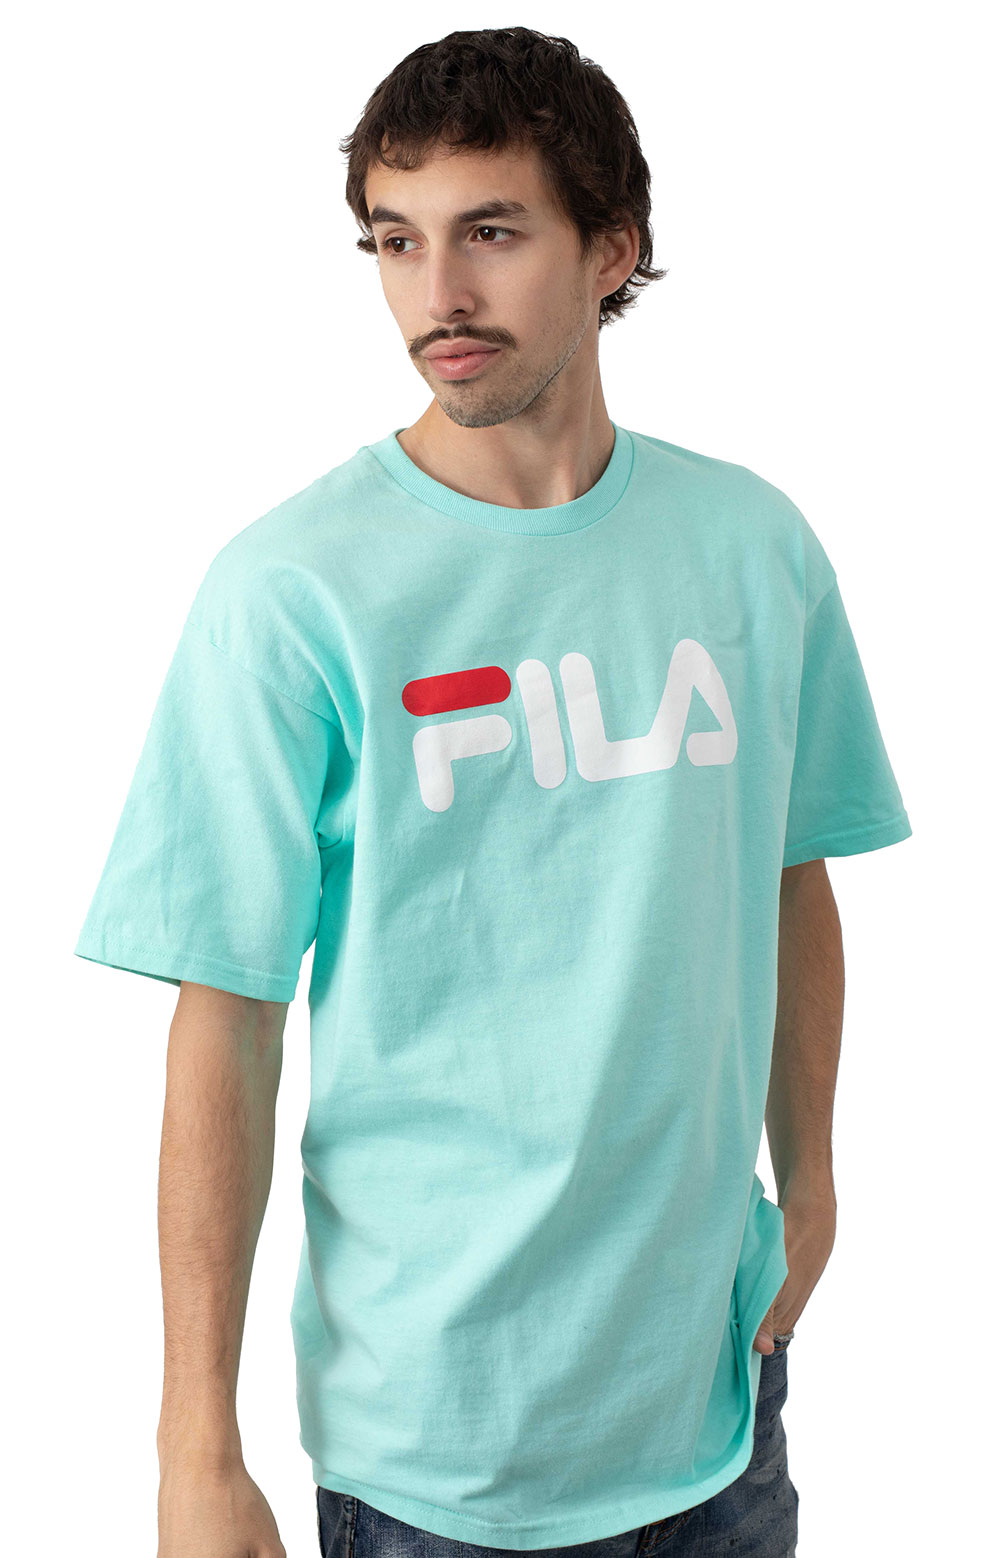 Fila Printed T-Shirt - Teal 2